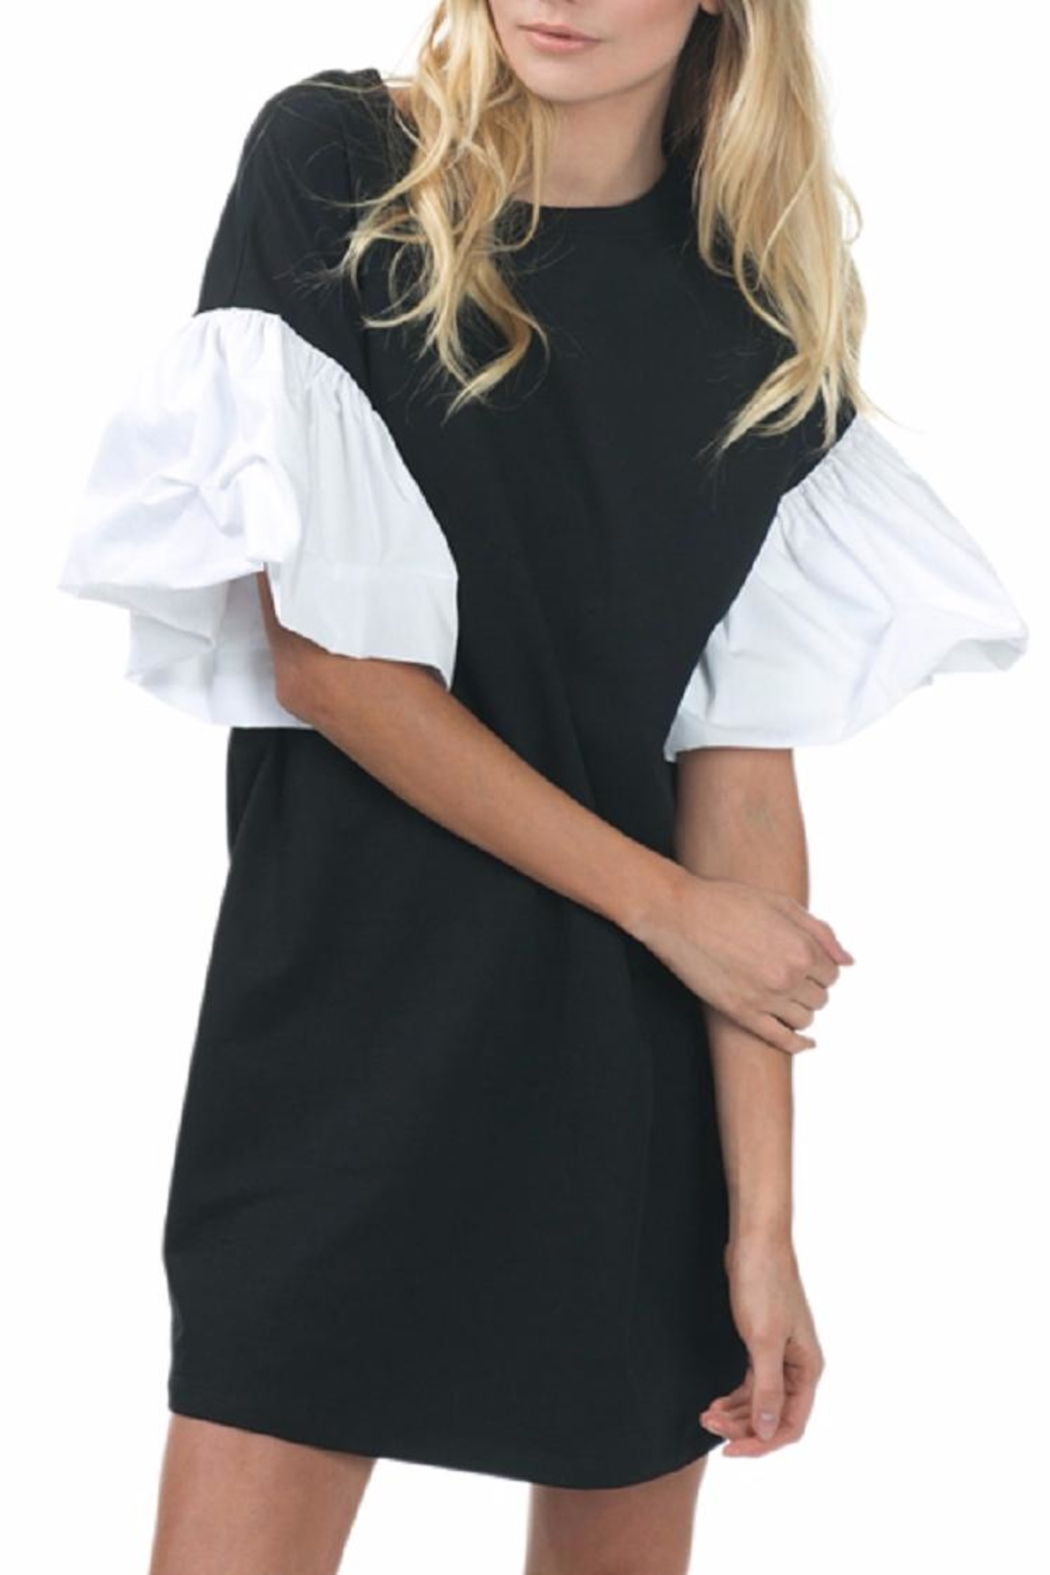 cq by cq Ruffle Sleeve Dress - Main Image